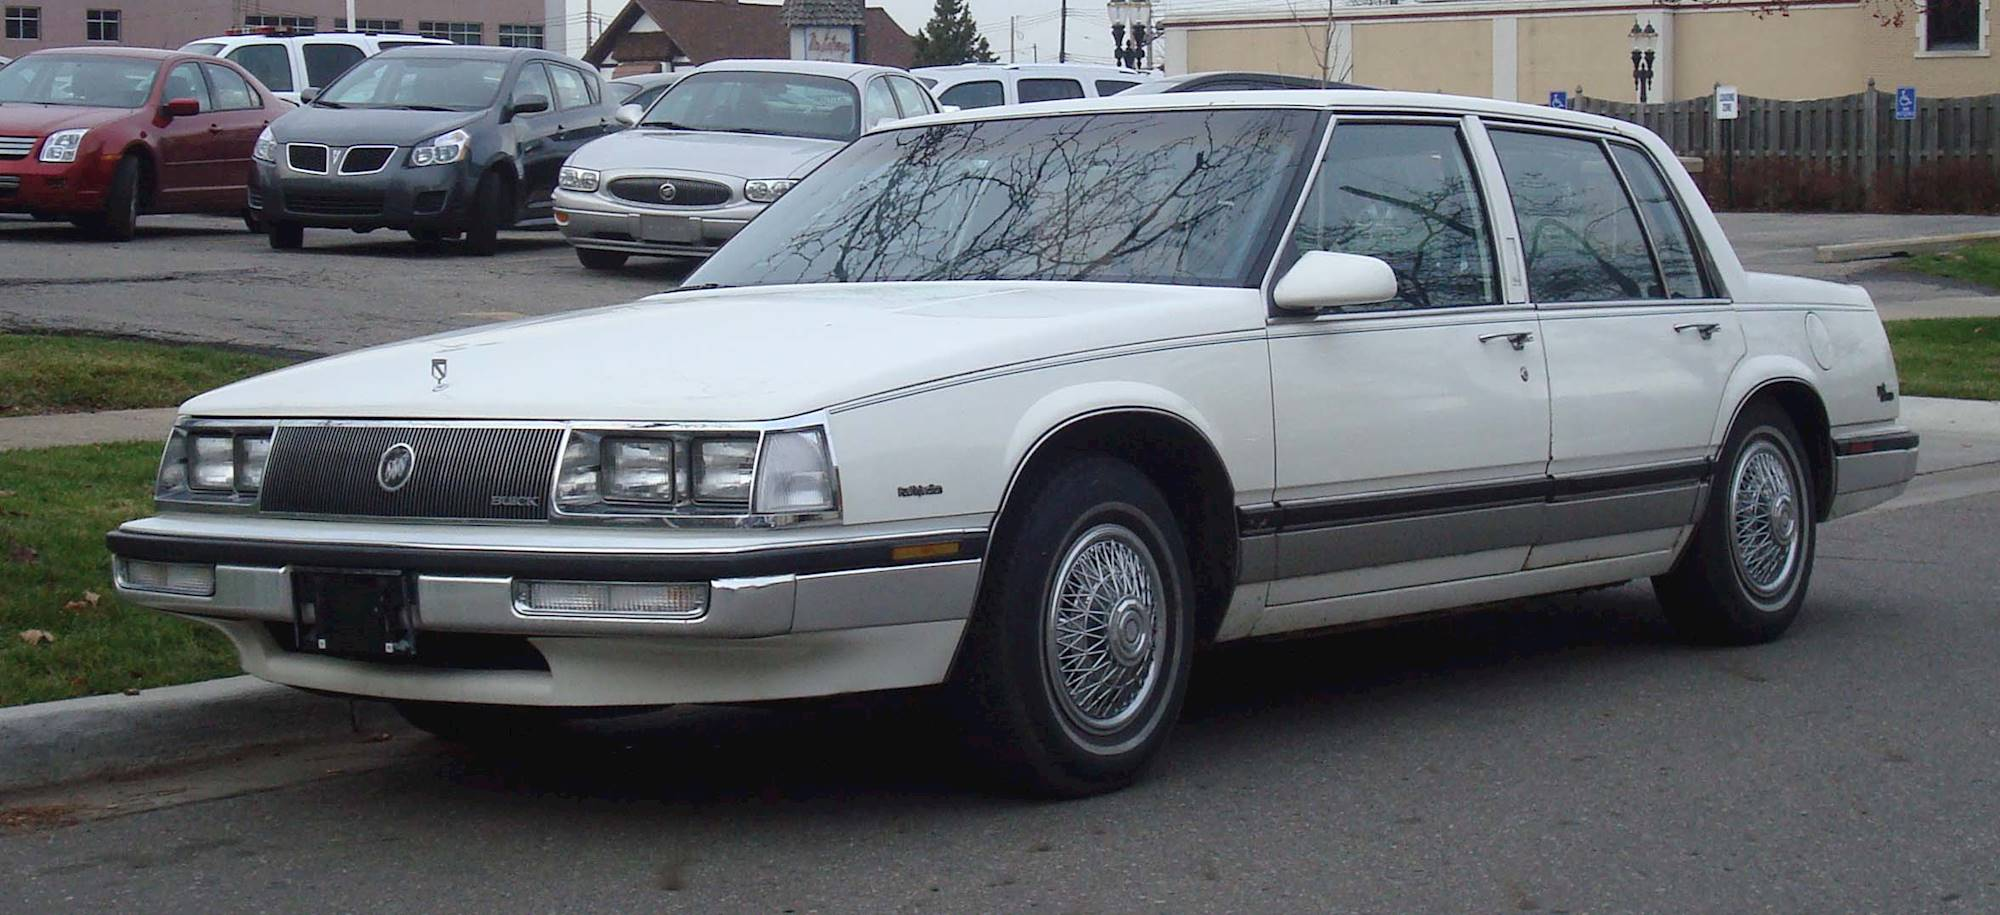 hight resolution of  1989 buick electra park avenue